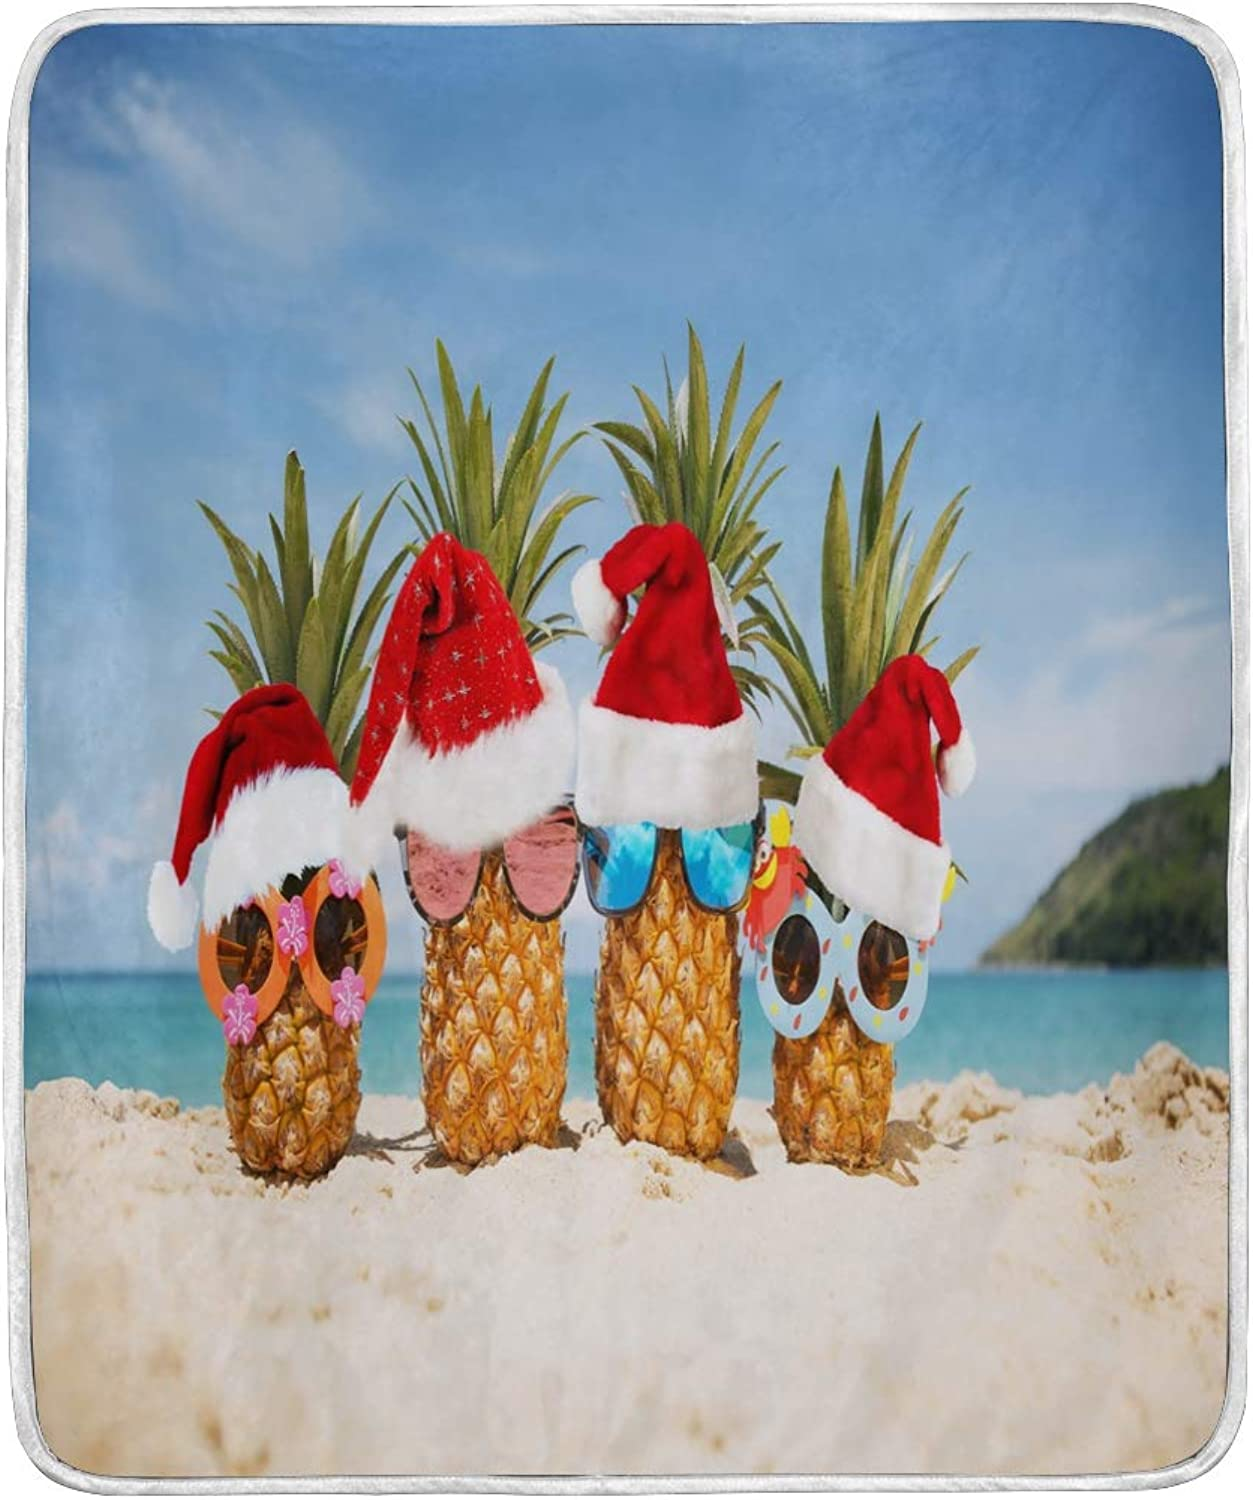 ALAZA Home Decor Hipster Pineapple Fruit Christmas Tropical Blanket Soft Warm Blankets for Bed Couch Sofa Lightweight Travelling Camping 60 x 50 Inch Throw Size for Kids Boys Women